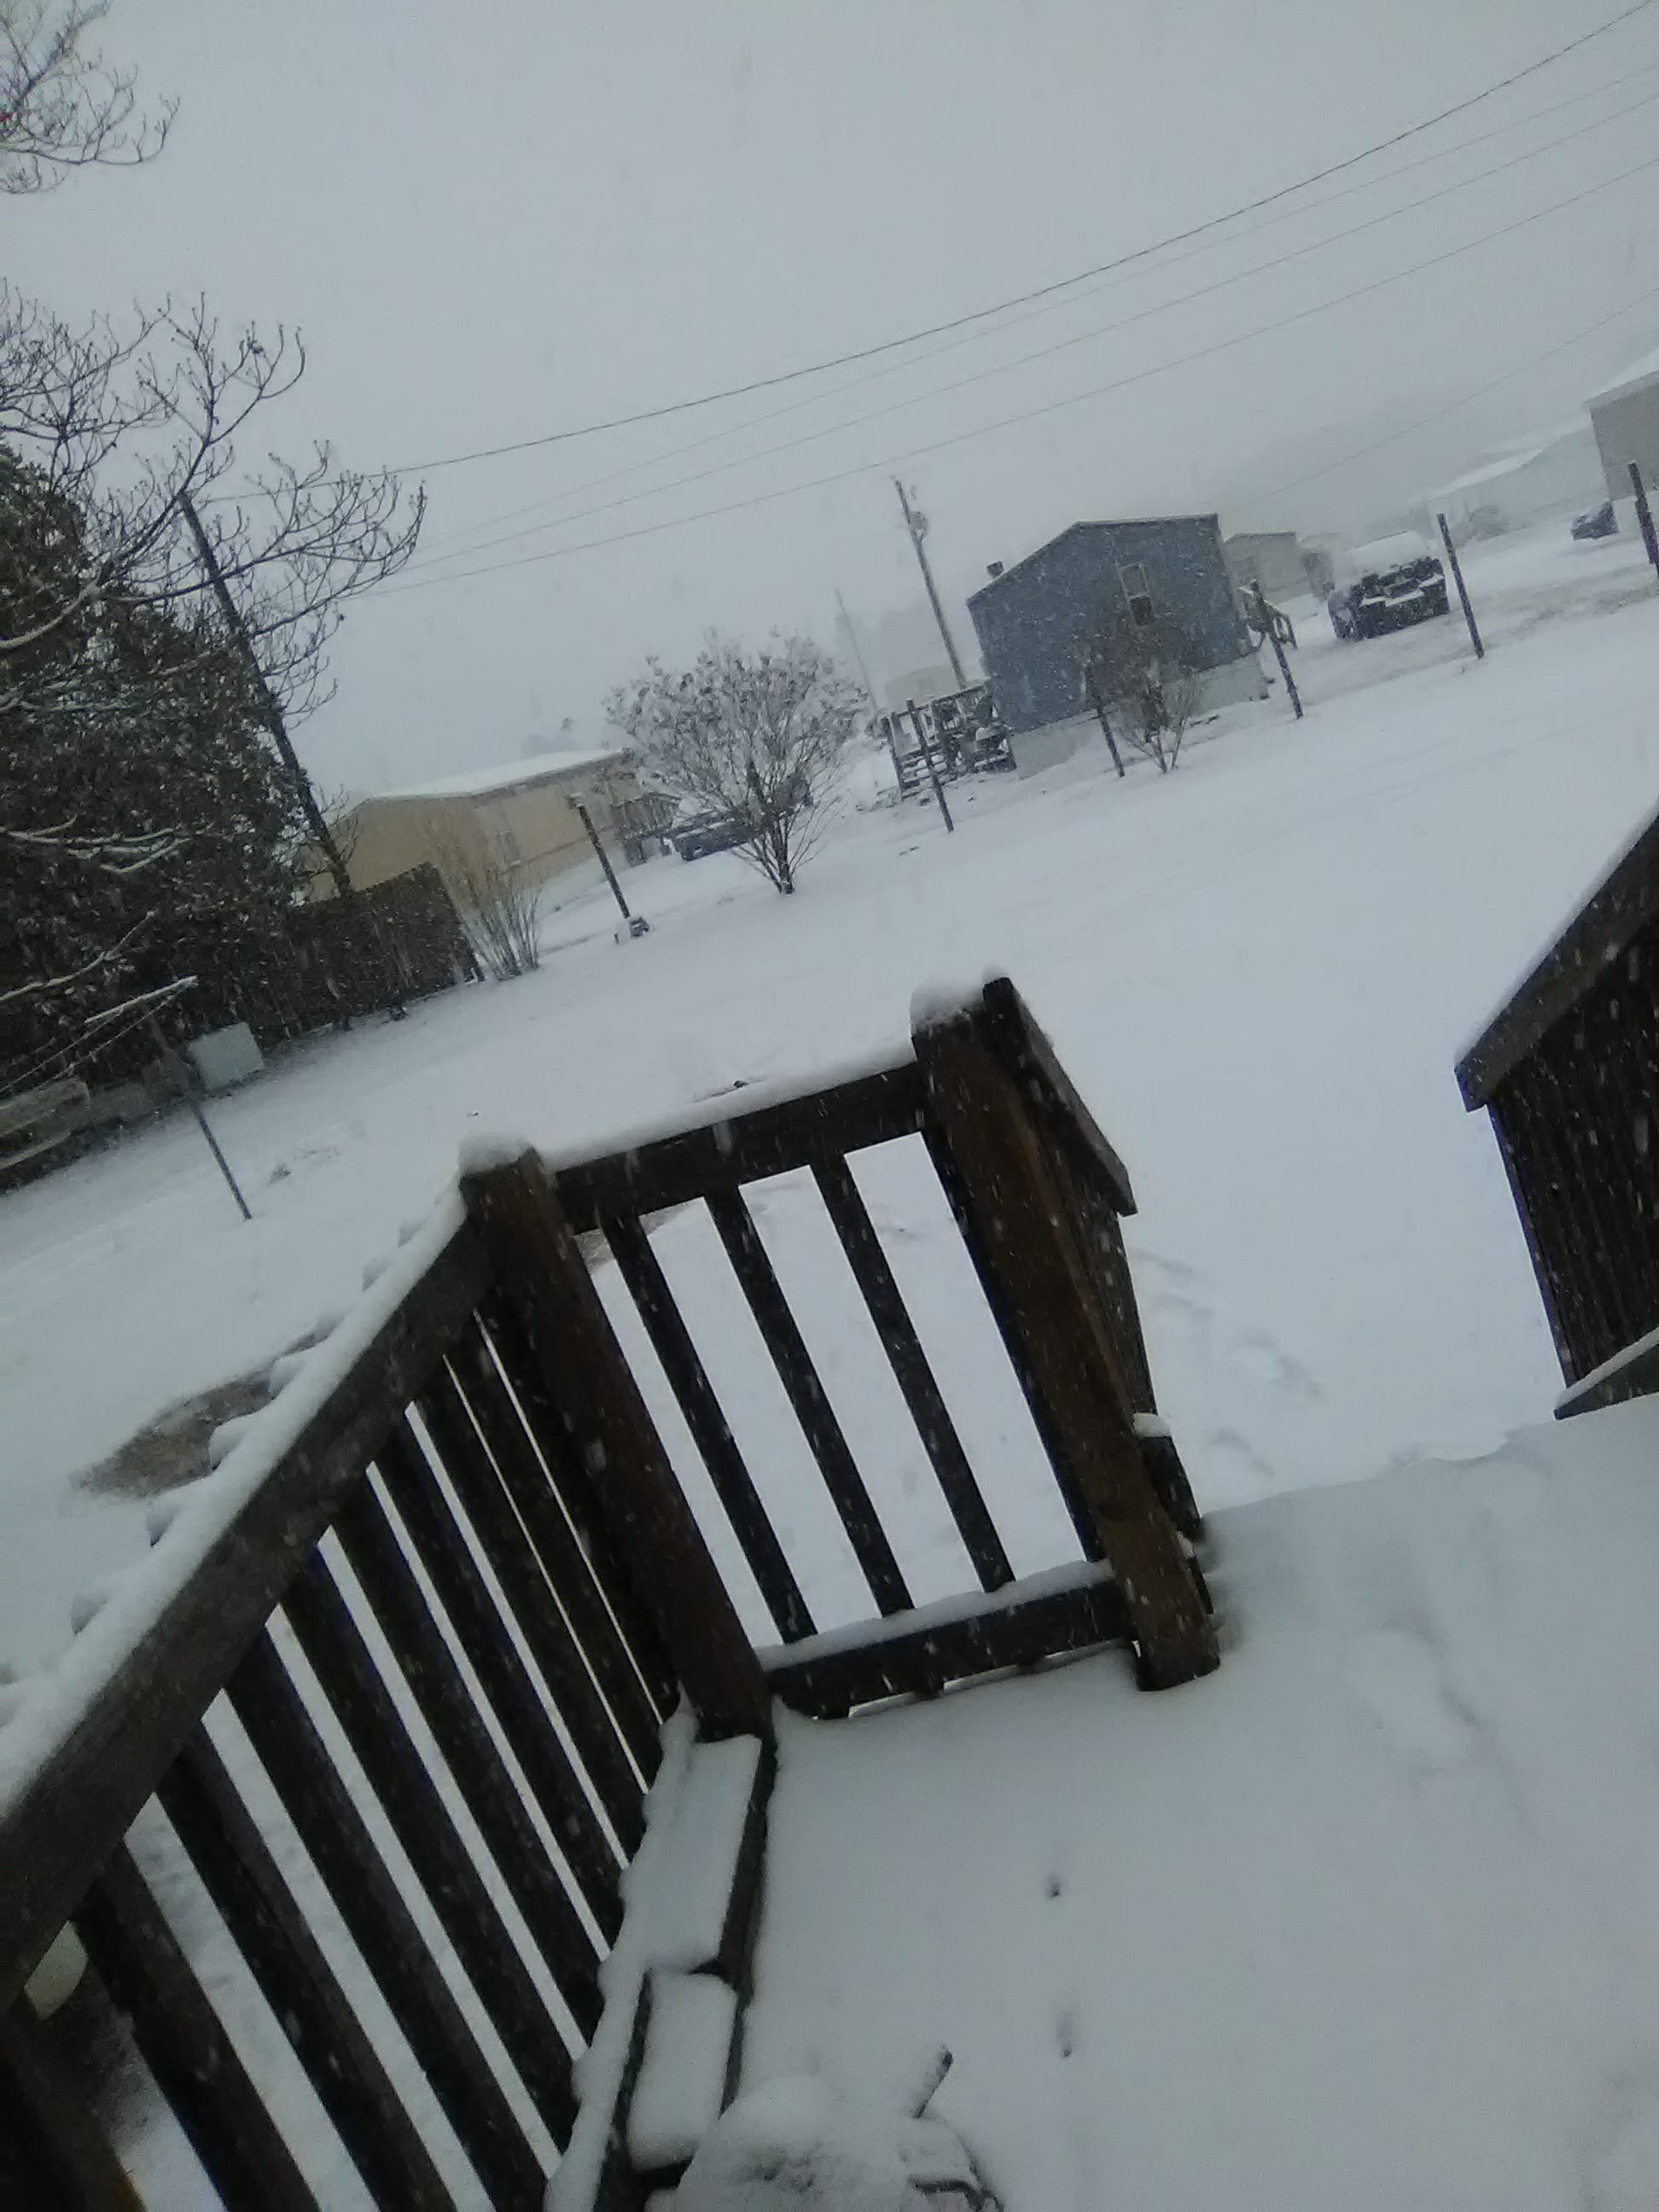 A snowy front yard{ }(Submitted by Blake and Shawnna Crowley)